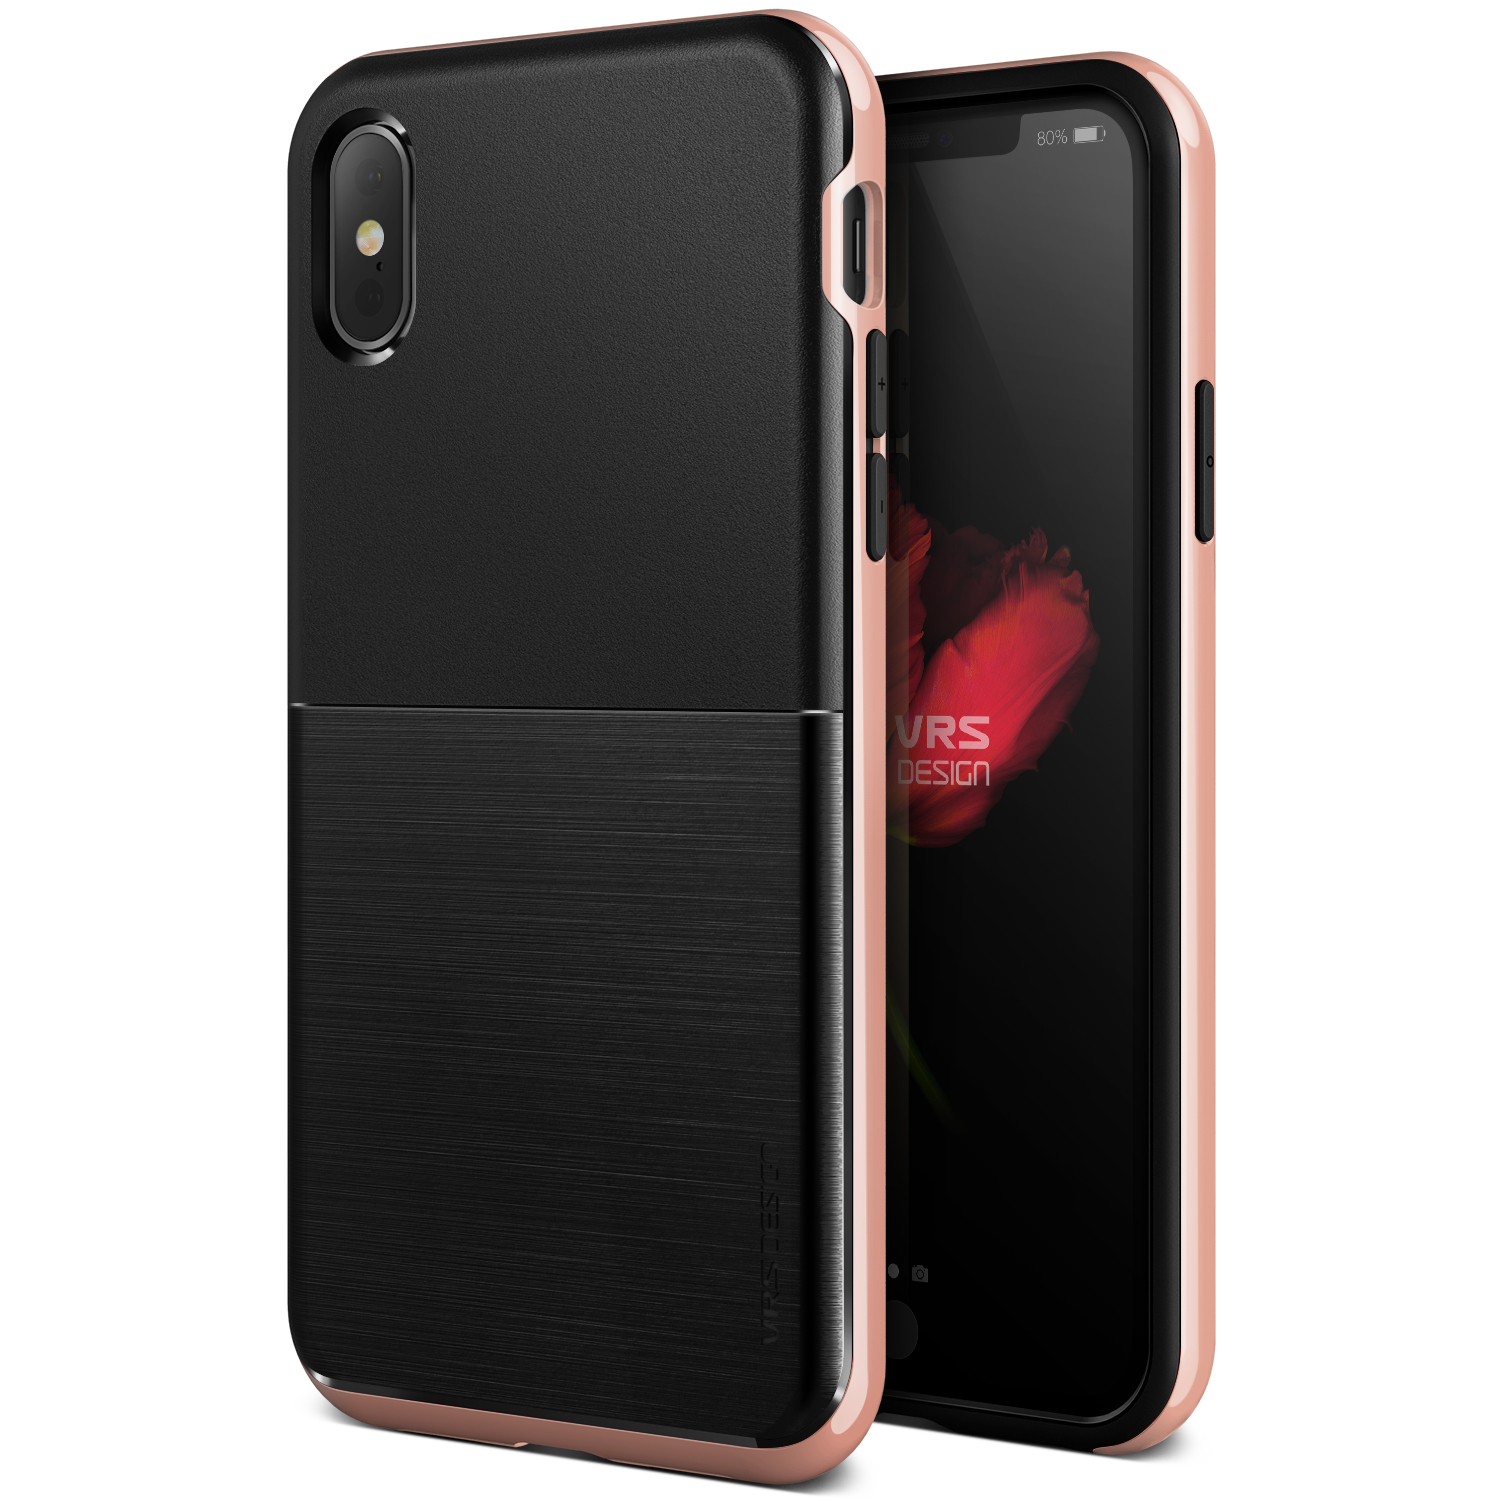 Apple iPhone X Case, VRS Design [High Pro Shield] Slim TPU Cover with Rugged Protection